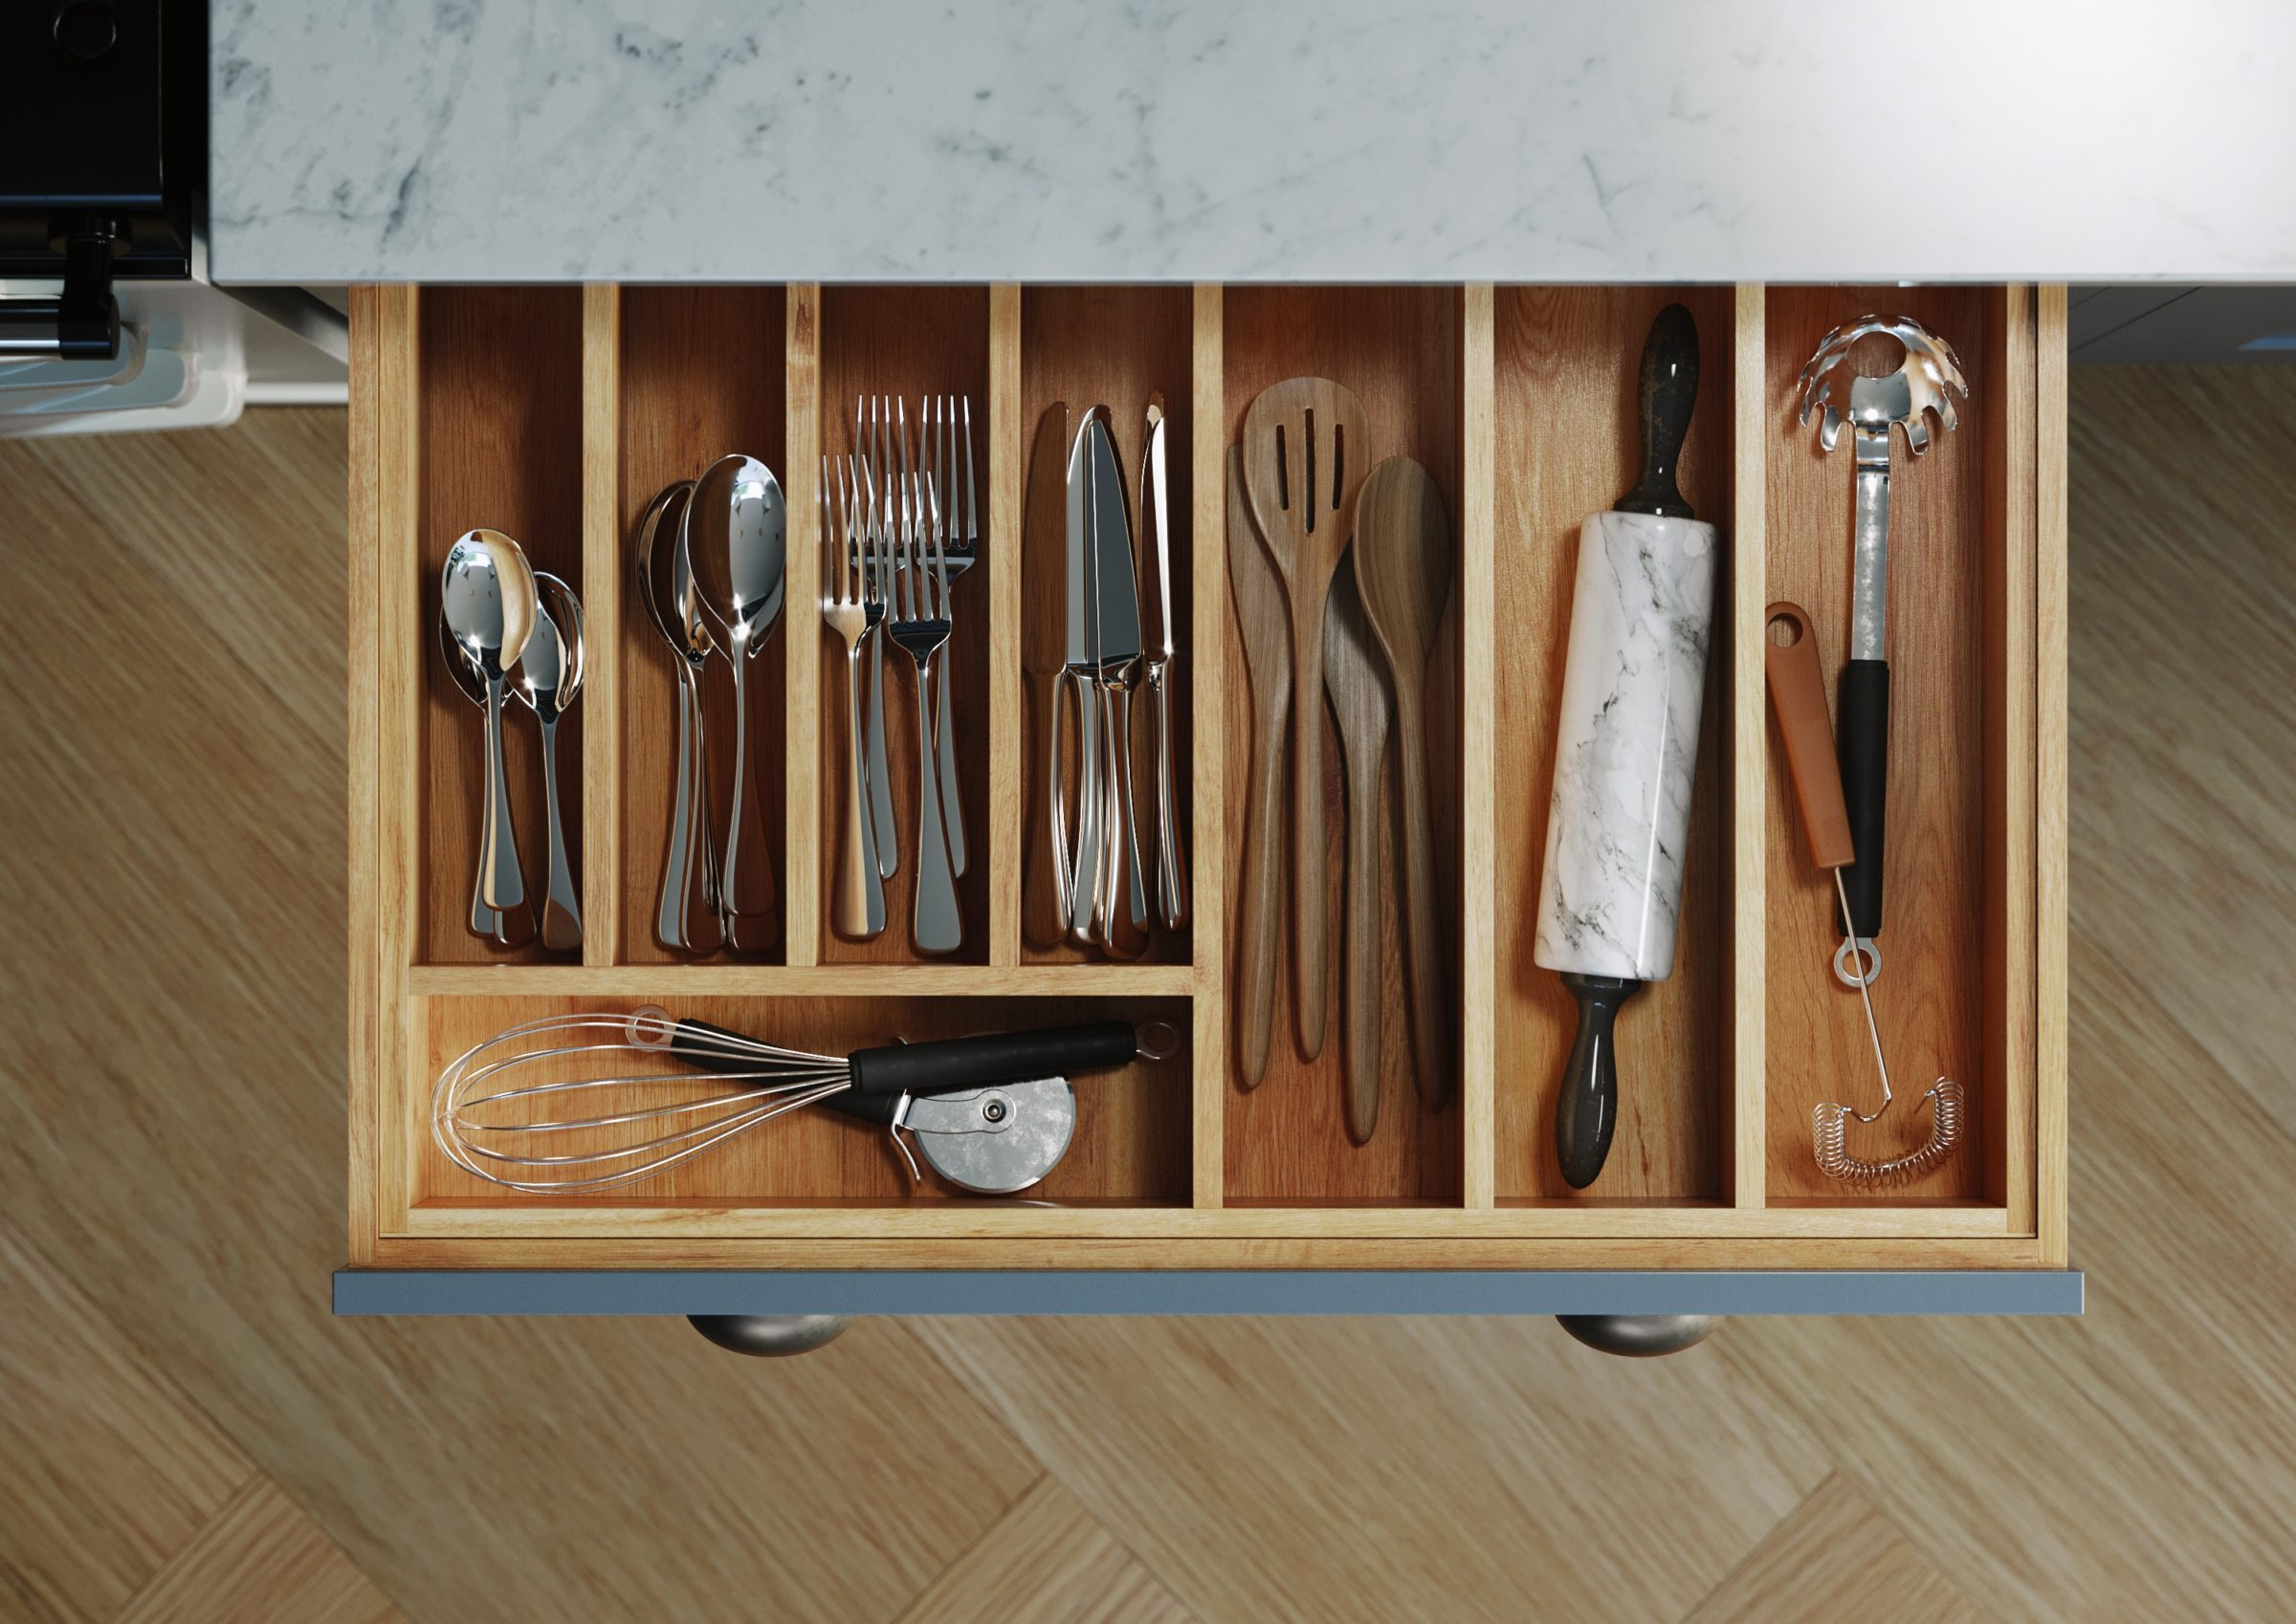 Photo of a kitchen drawer by Kin